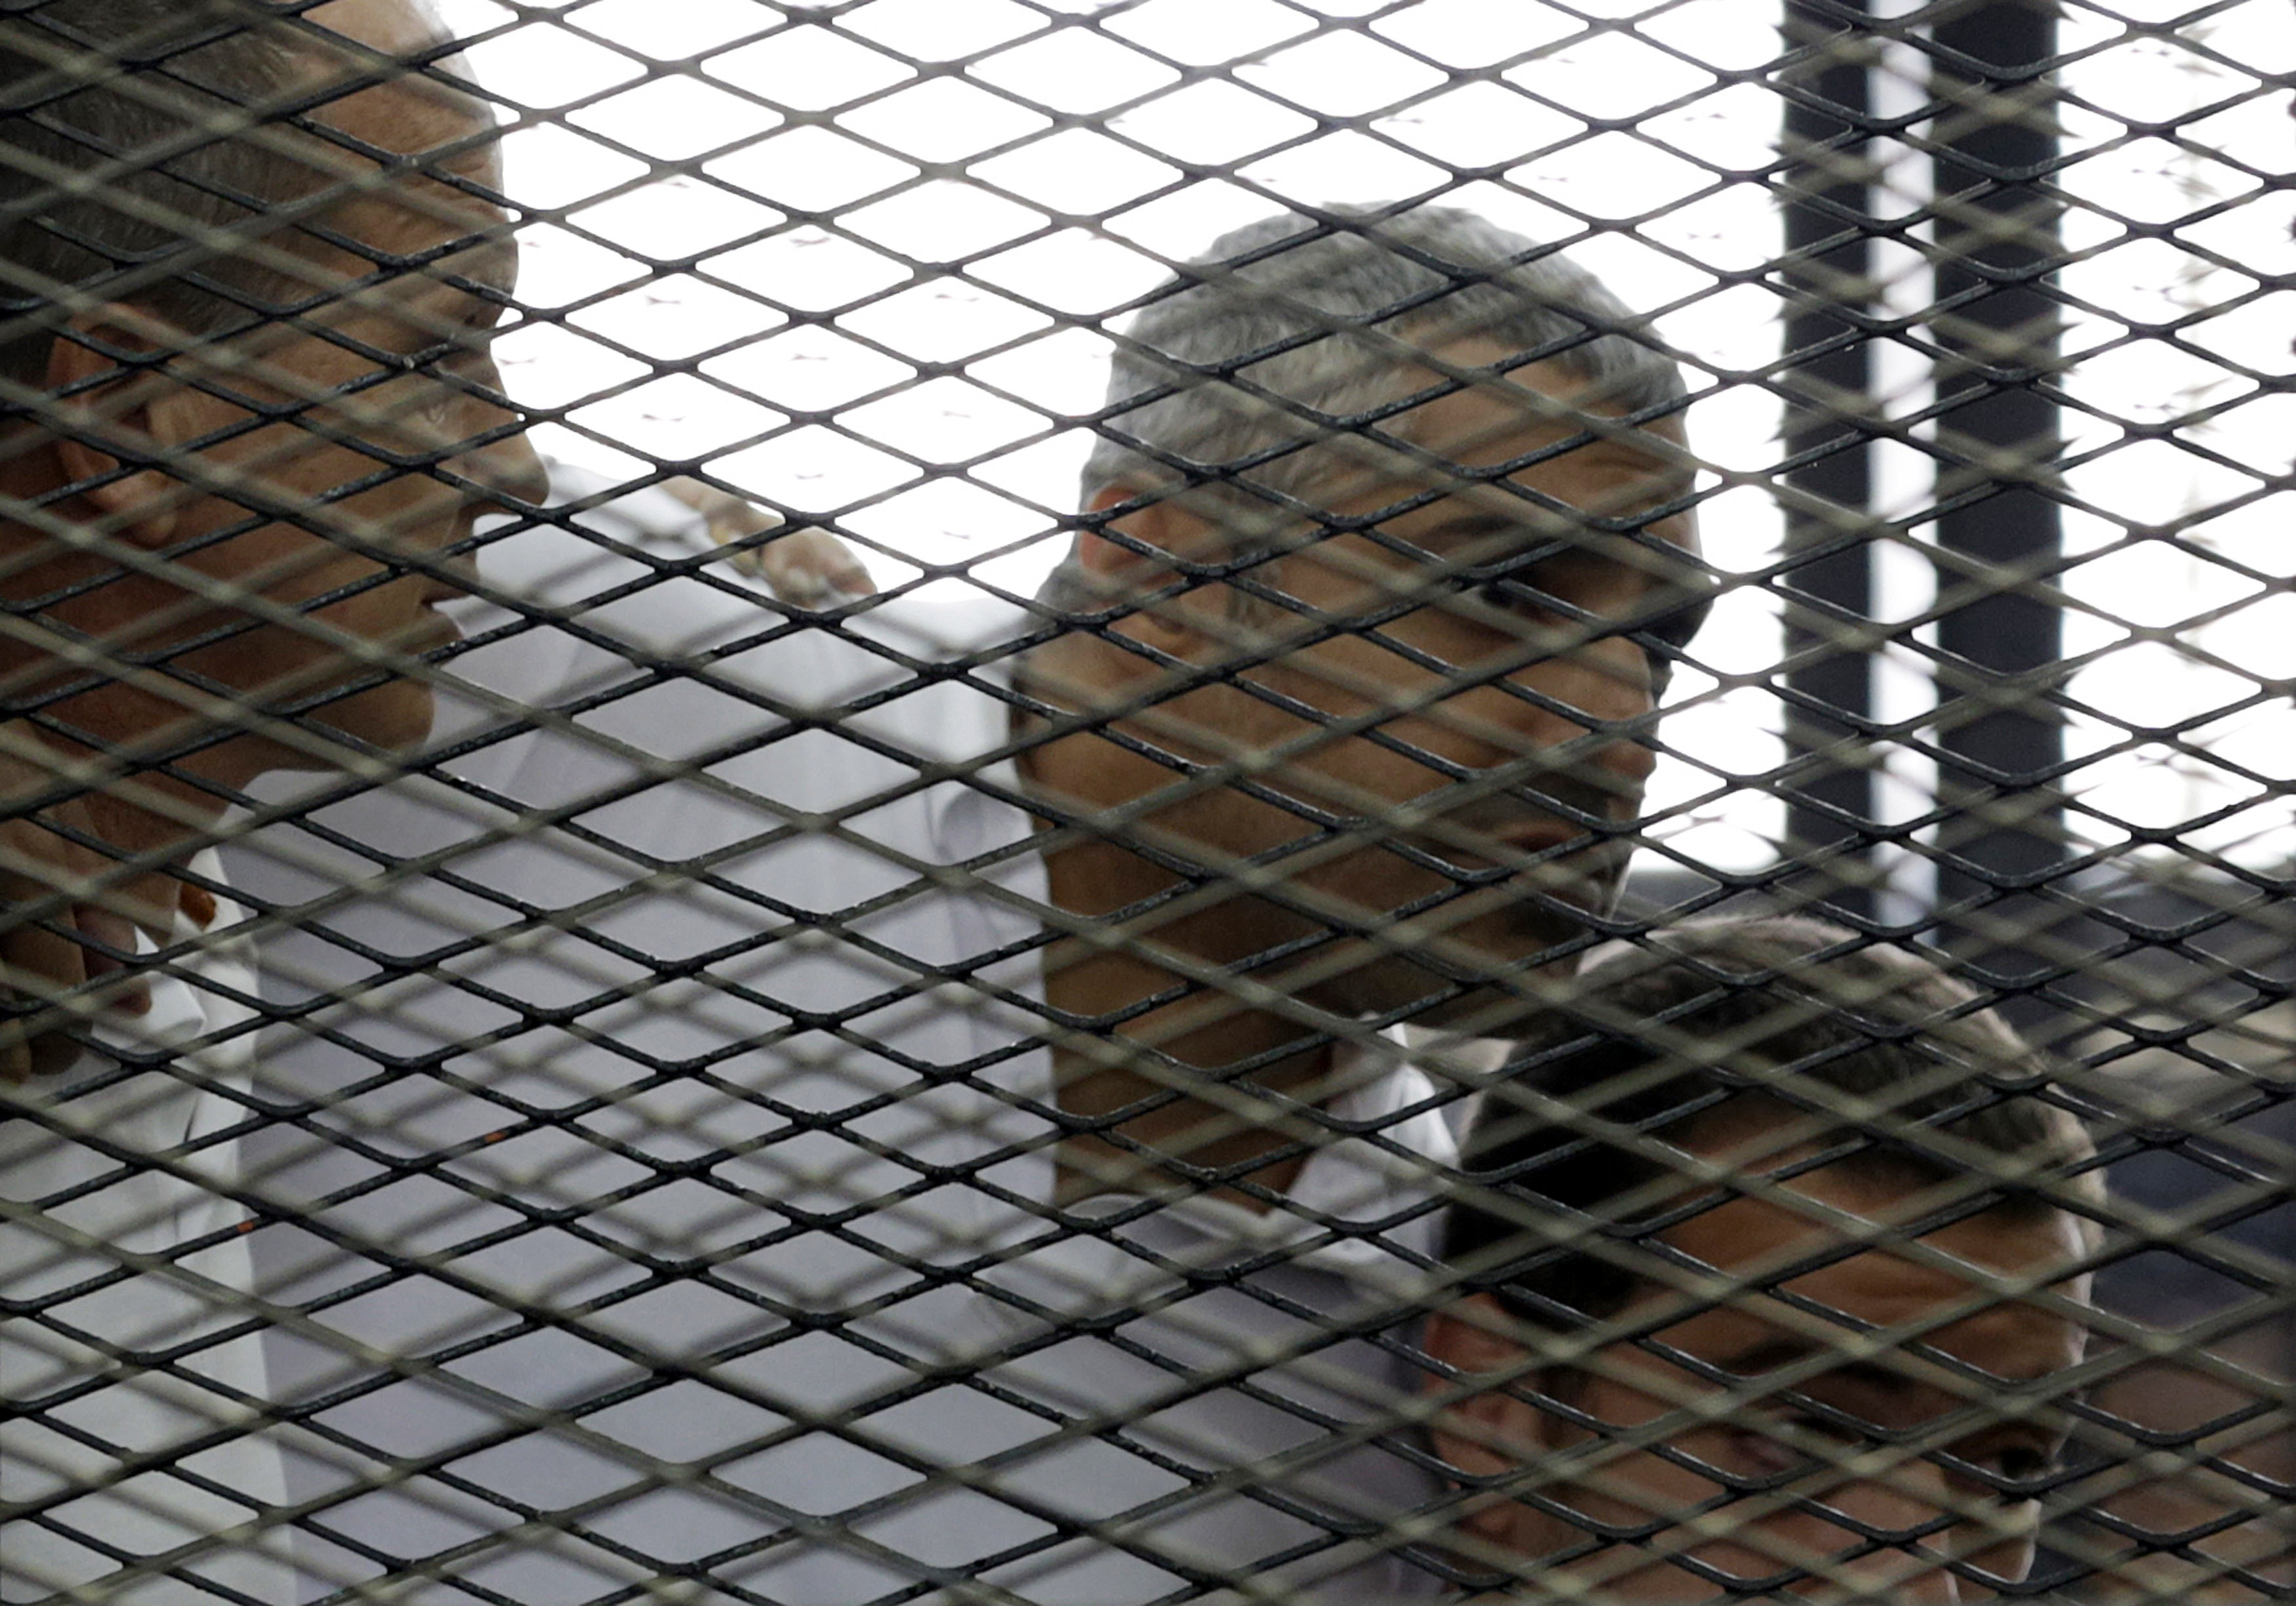 """Peter Greste, Mohamed Fahmy and Baher Mohamed (L to R) listen to a ruling at a court in Cairo June 23, 2014. The three Al Jazeera journalists were jailed for seven years in Egypt on Monday after the court convicted them of helping a """"terrorist organizatio"""